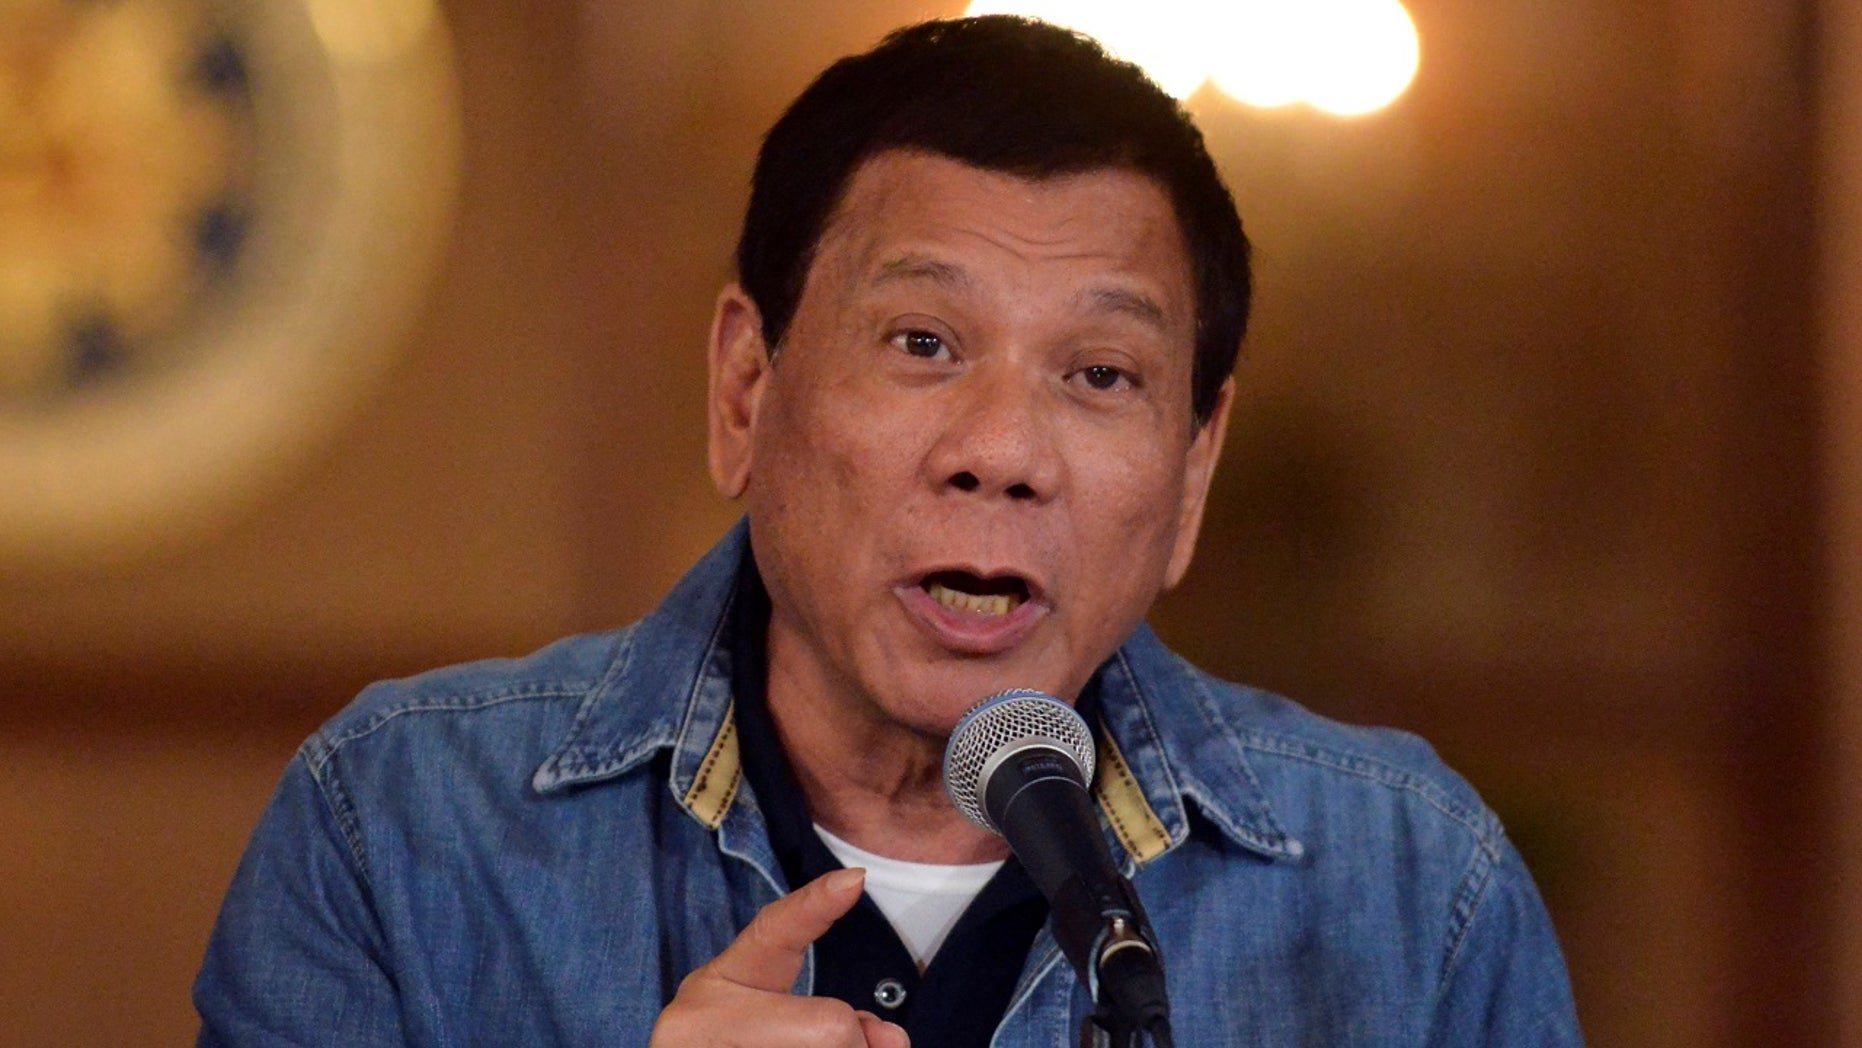 Philippine President Rodrigo Duterte gestures while speaking during a late-night news conference at the presidential palace in Manila, Philippines.